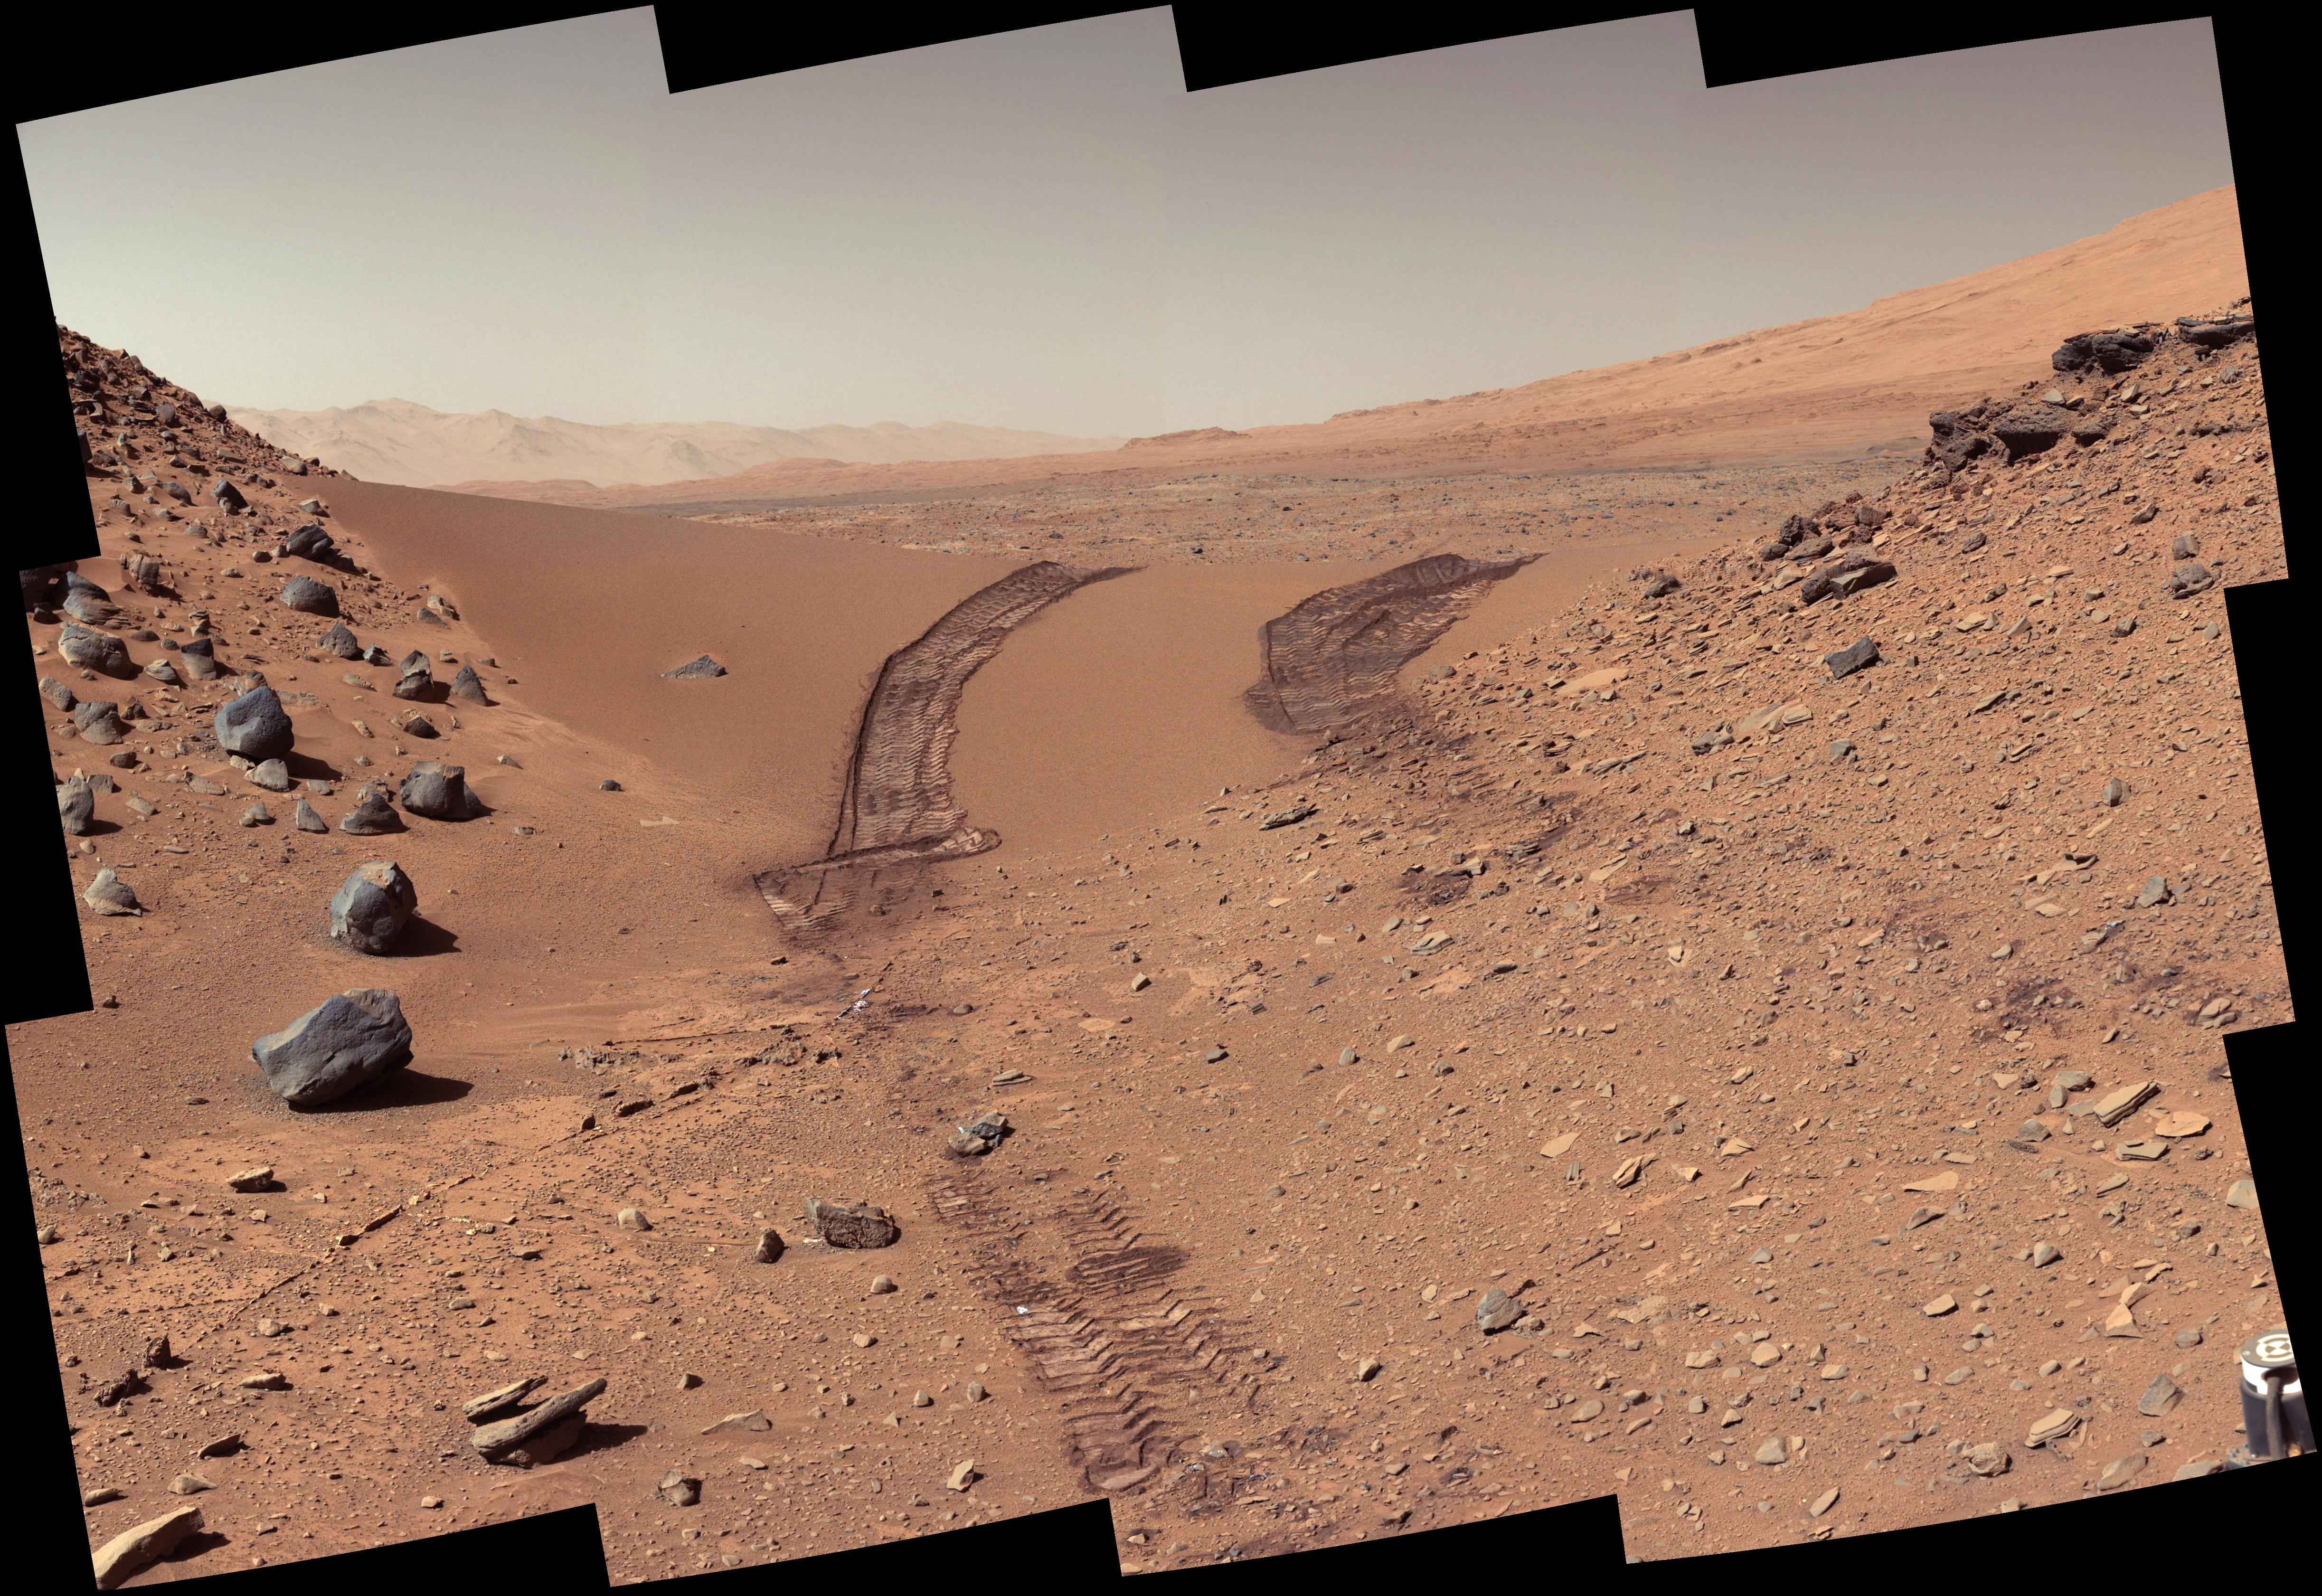 Tracks in the Martian soil left by the Curiosity rover. Credit: NASA/JPL-Caltech/MSSS